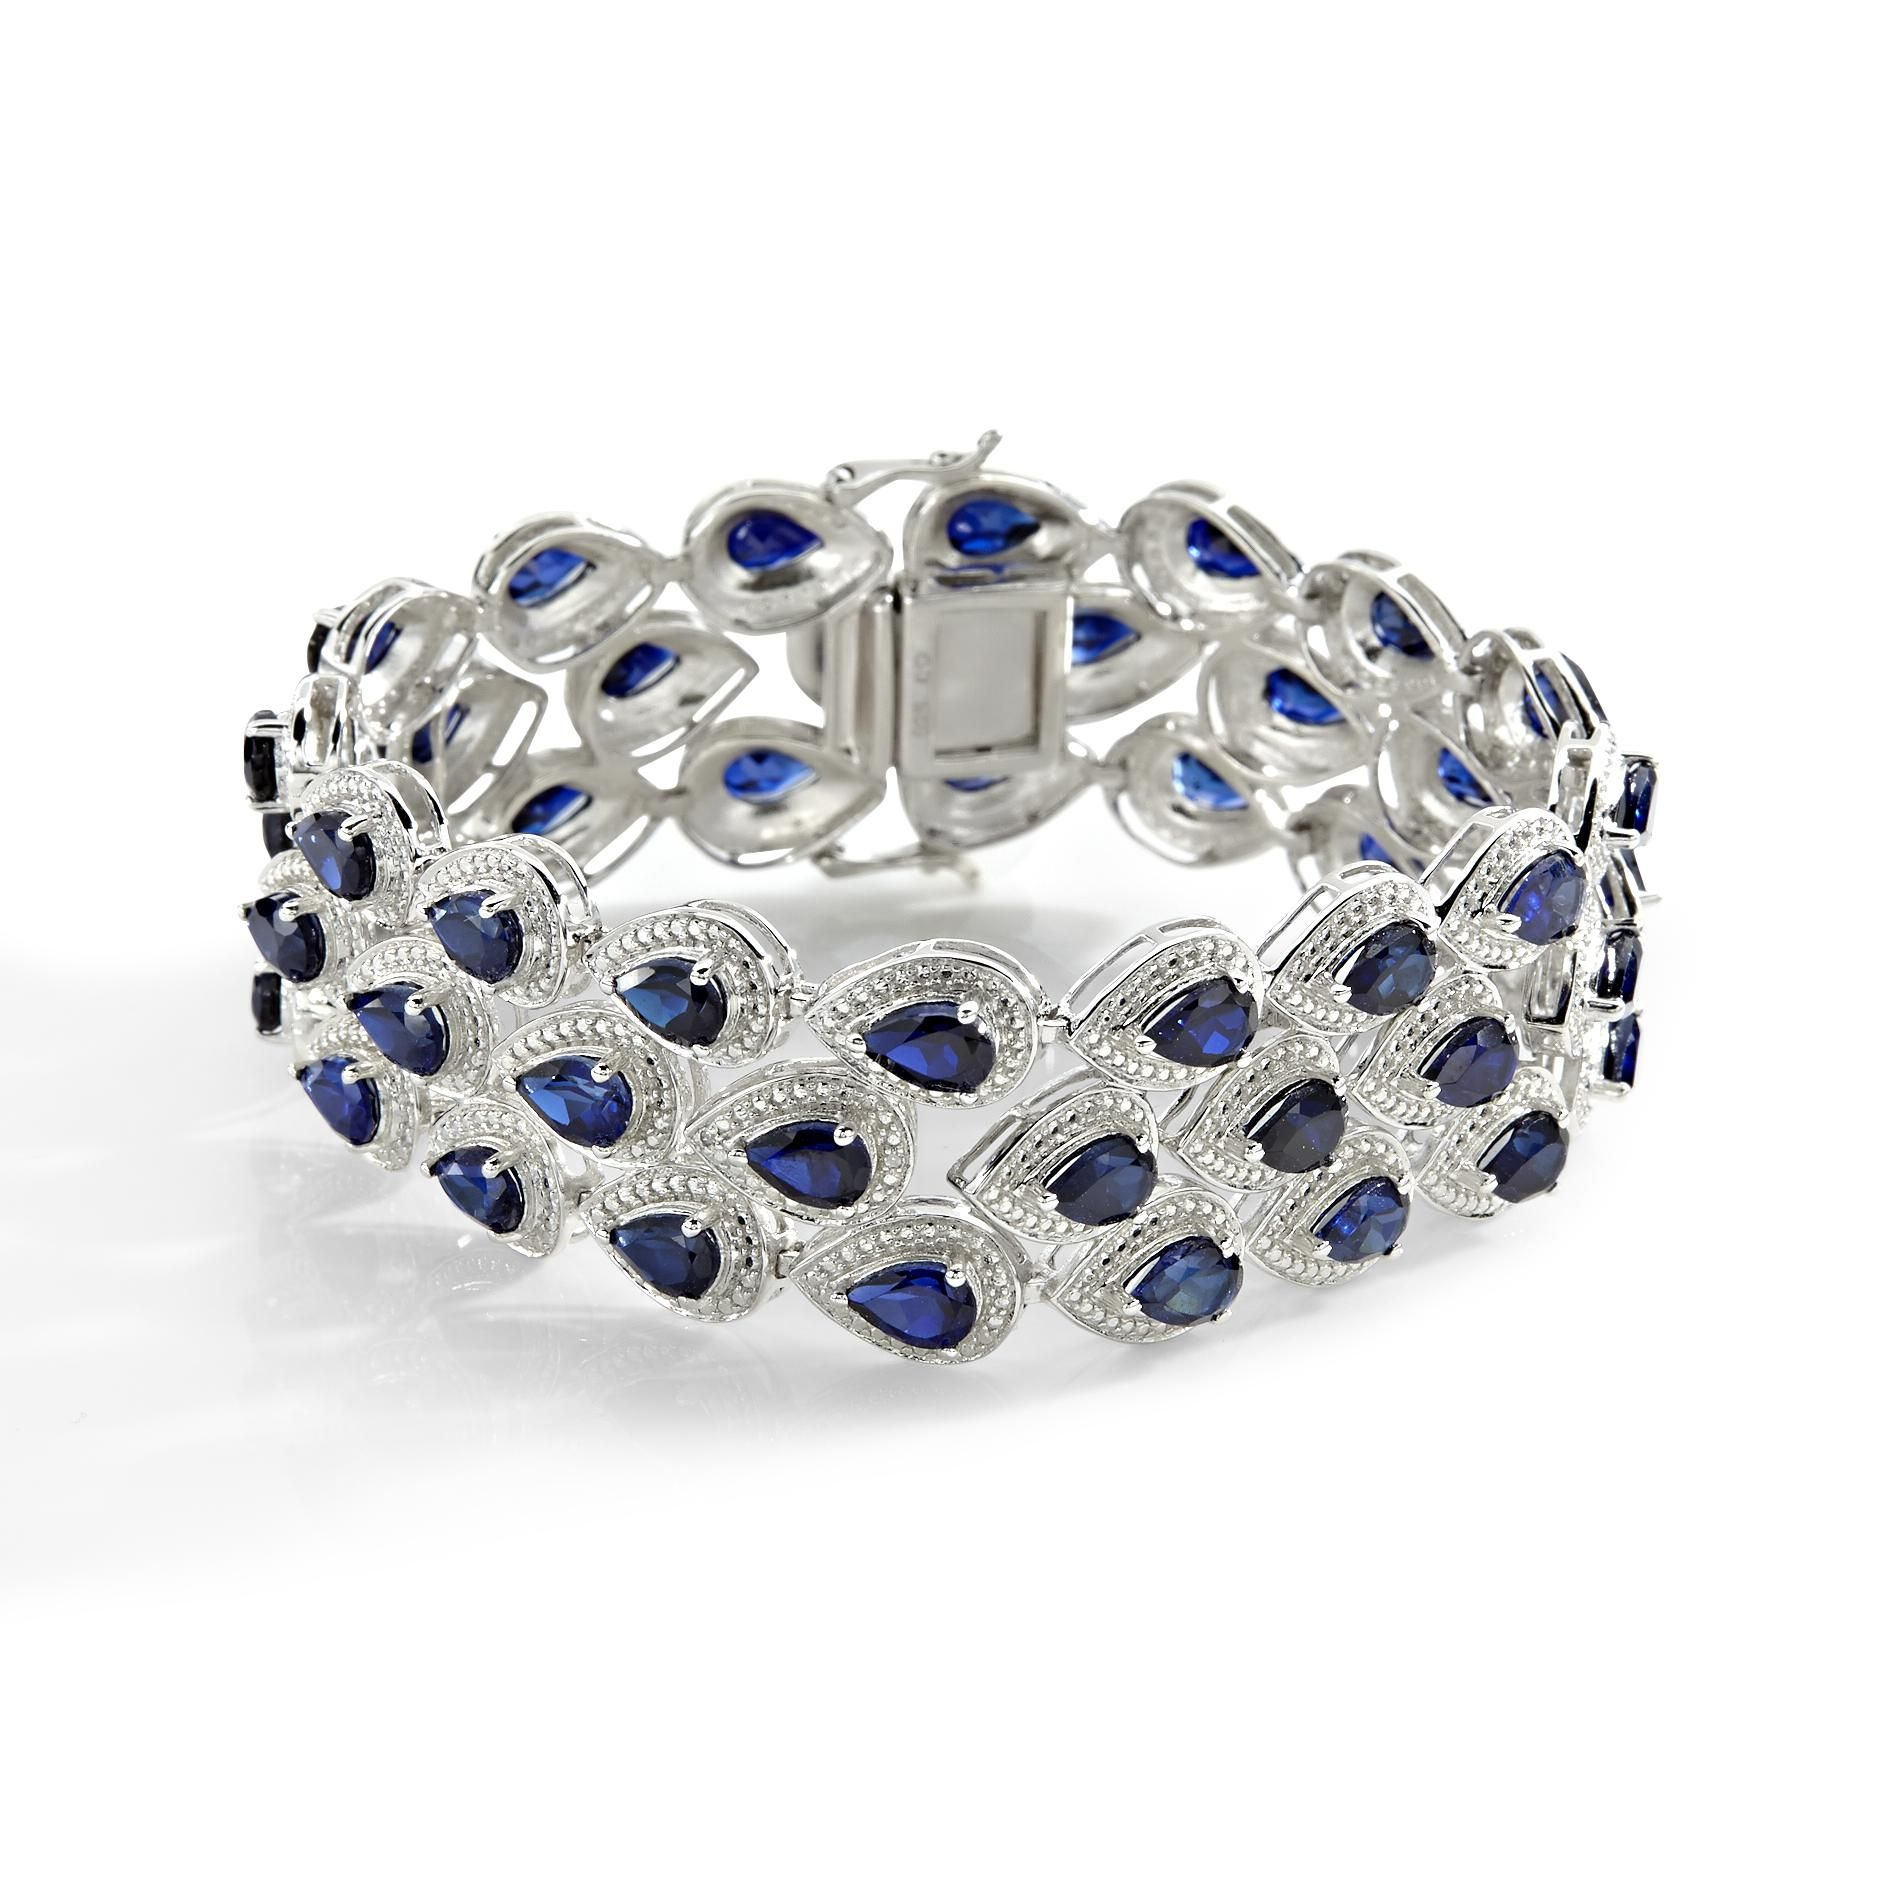 Sapphire and diamond bracelet pear shaped blue sapphire and